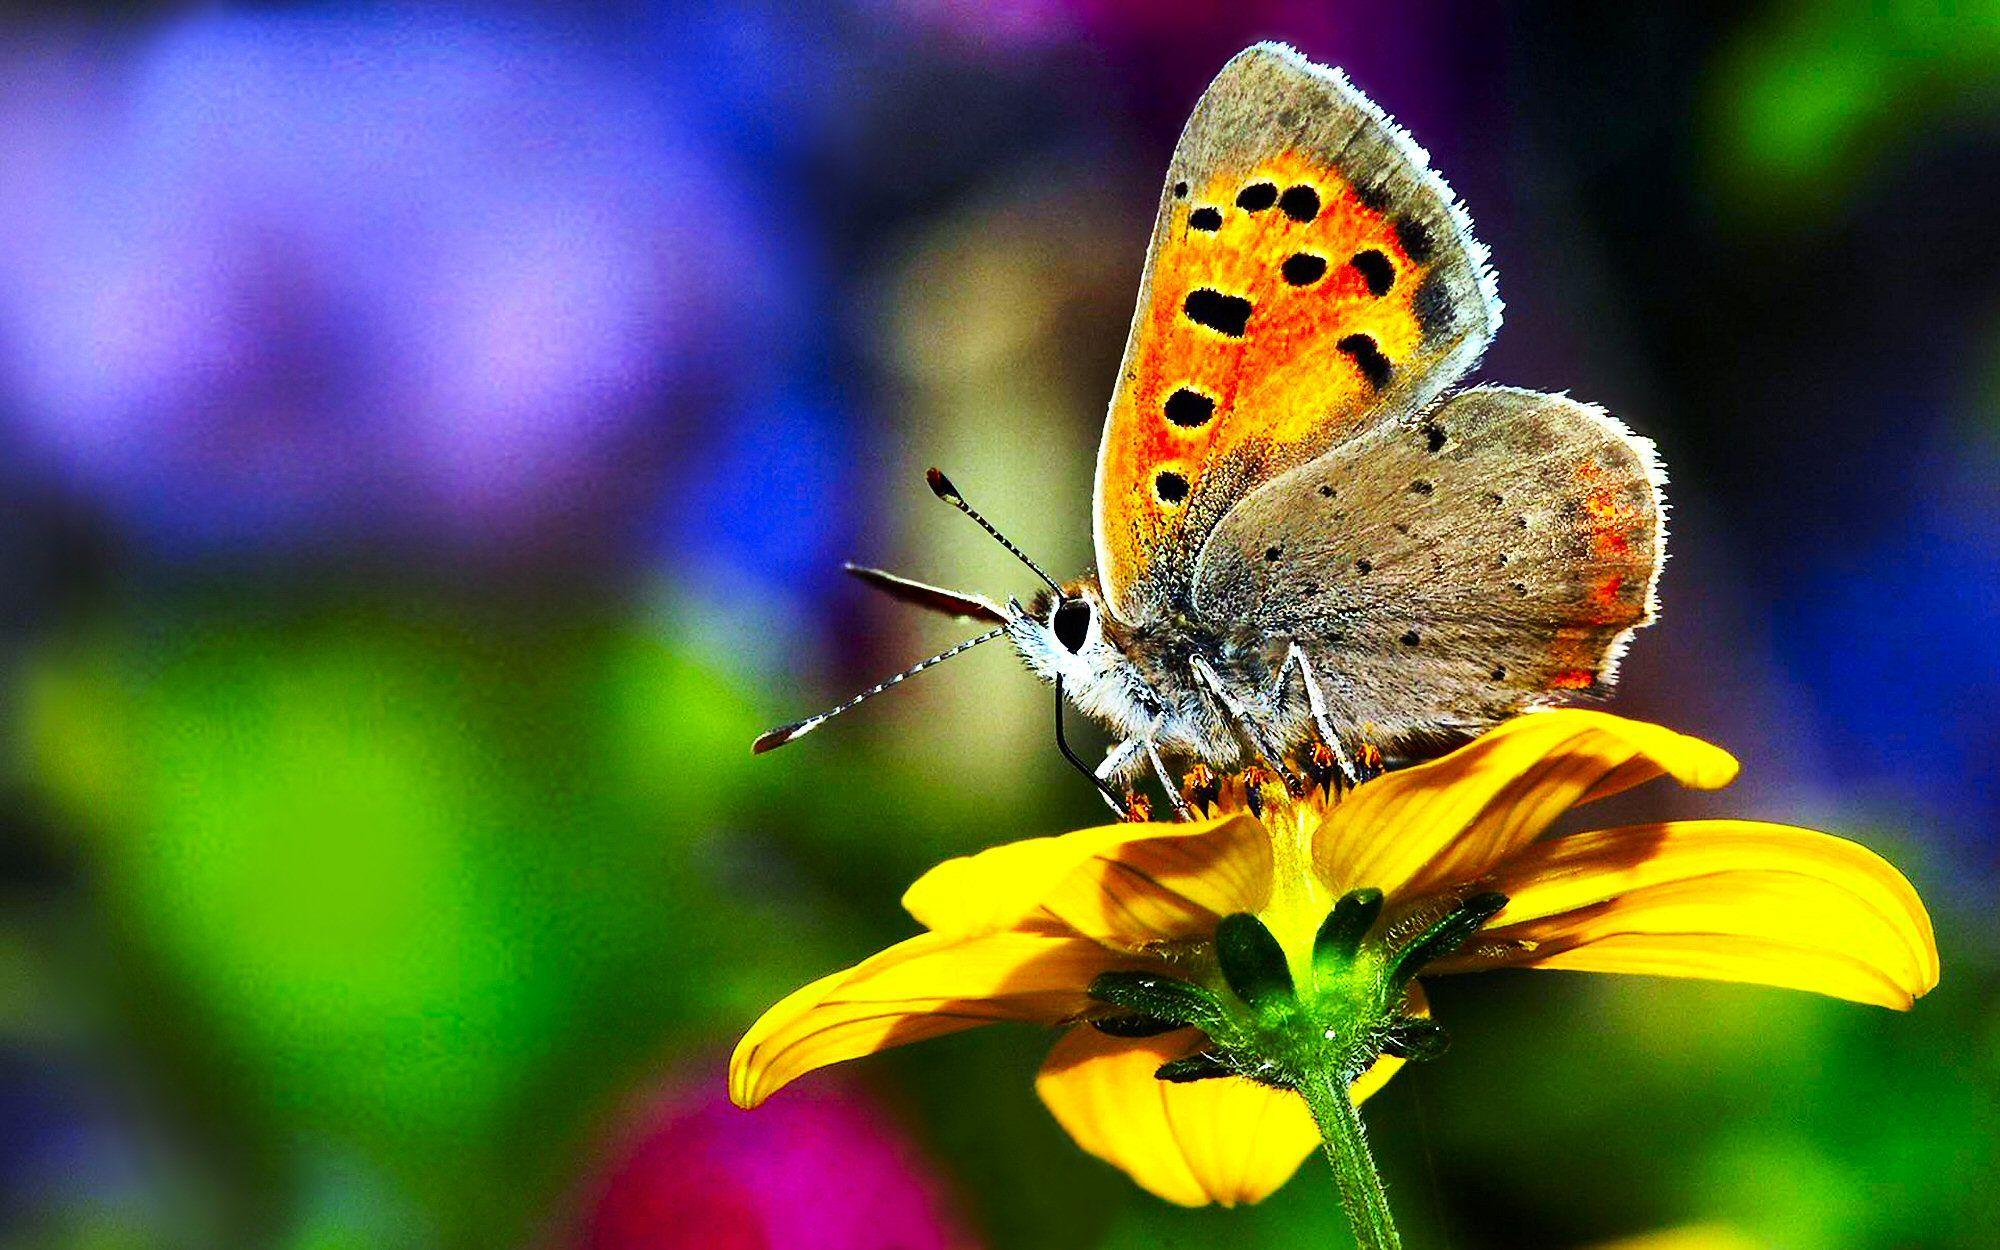 Butterfly Nature Wallpapers HD - Wallpaper Cave